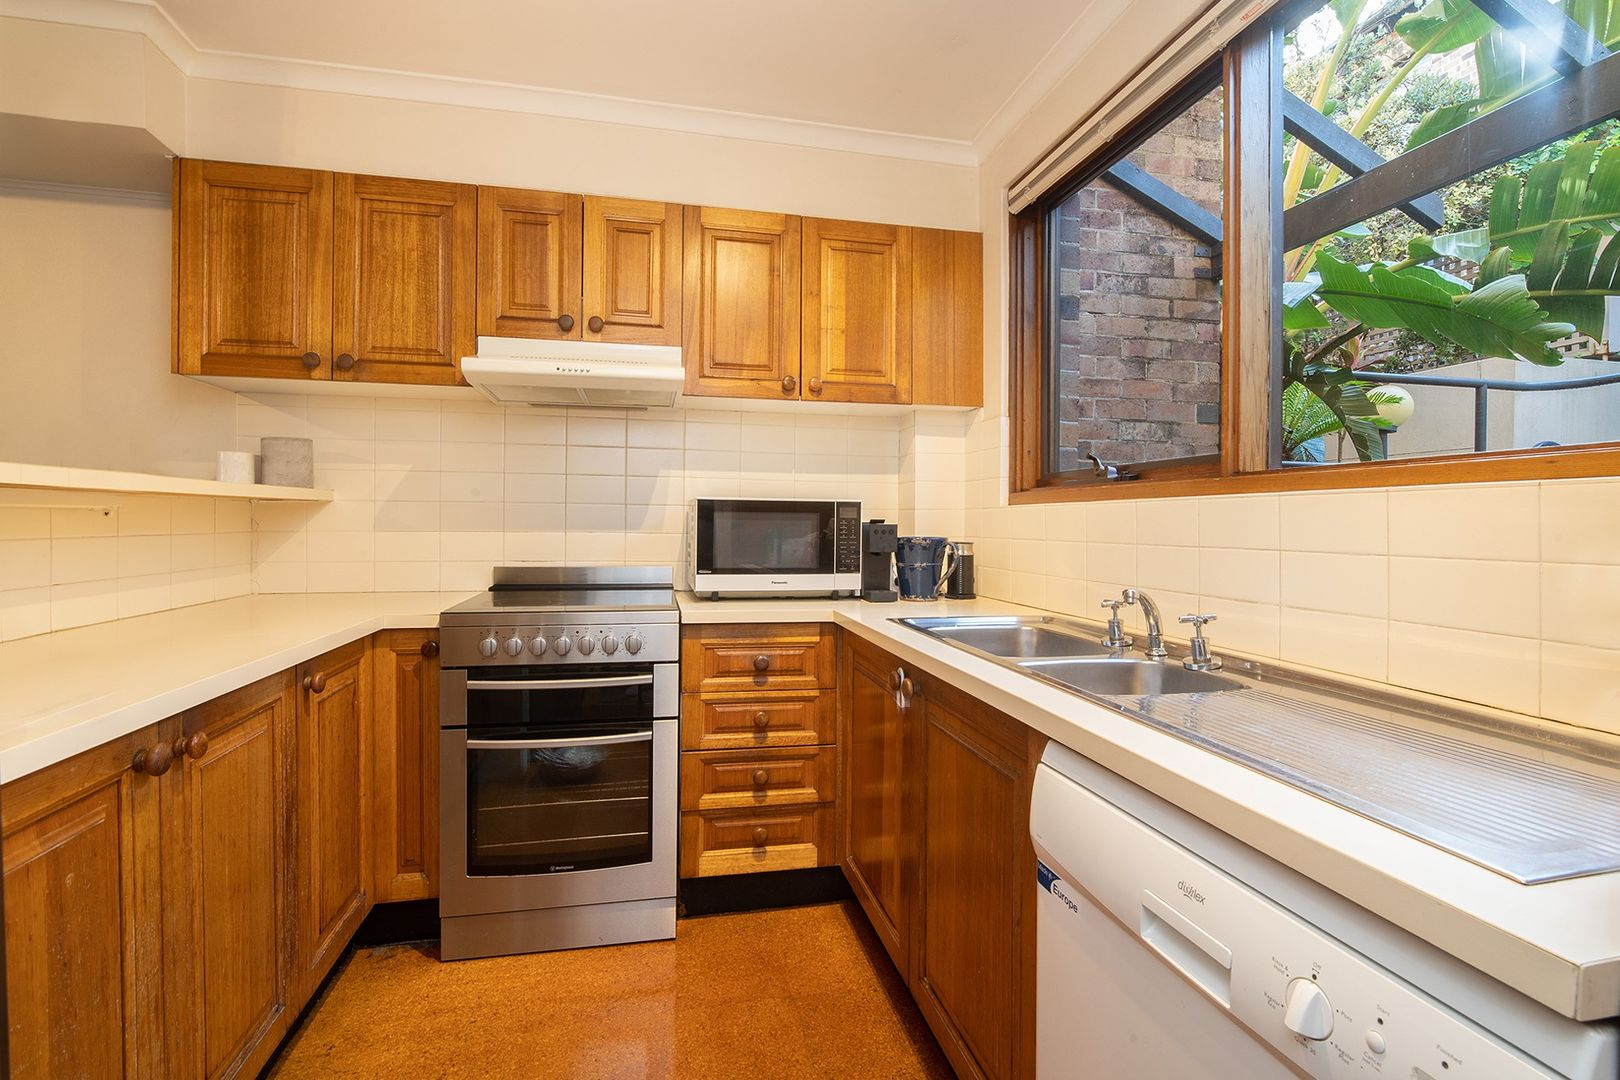 6/48-52 Wycombe Road, Neutral Bay NSW 2089, Image 1